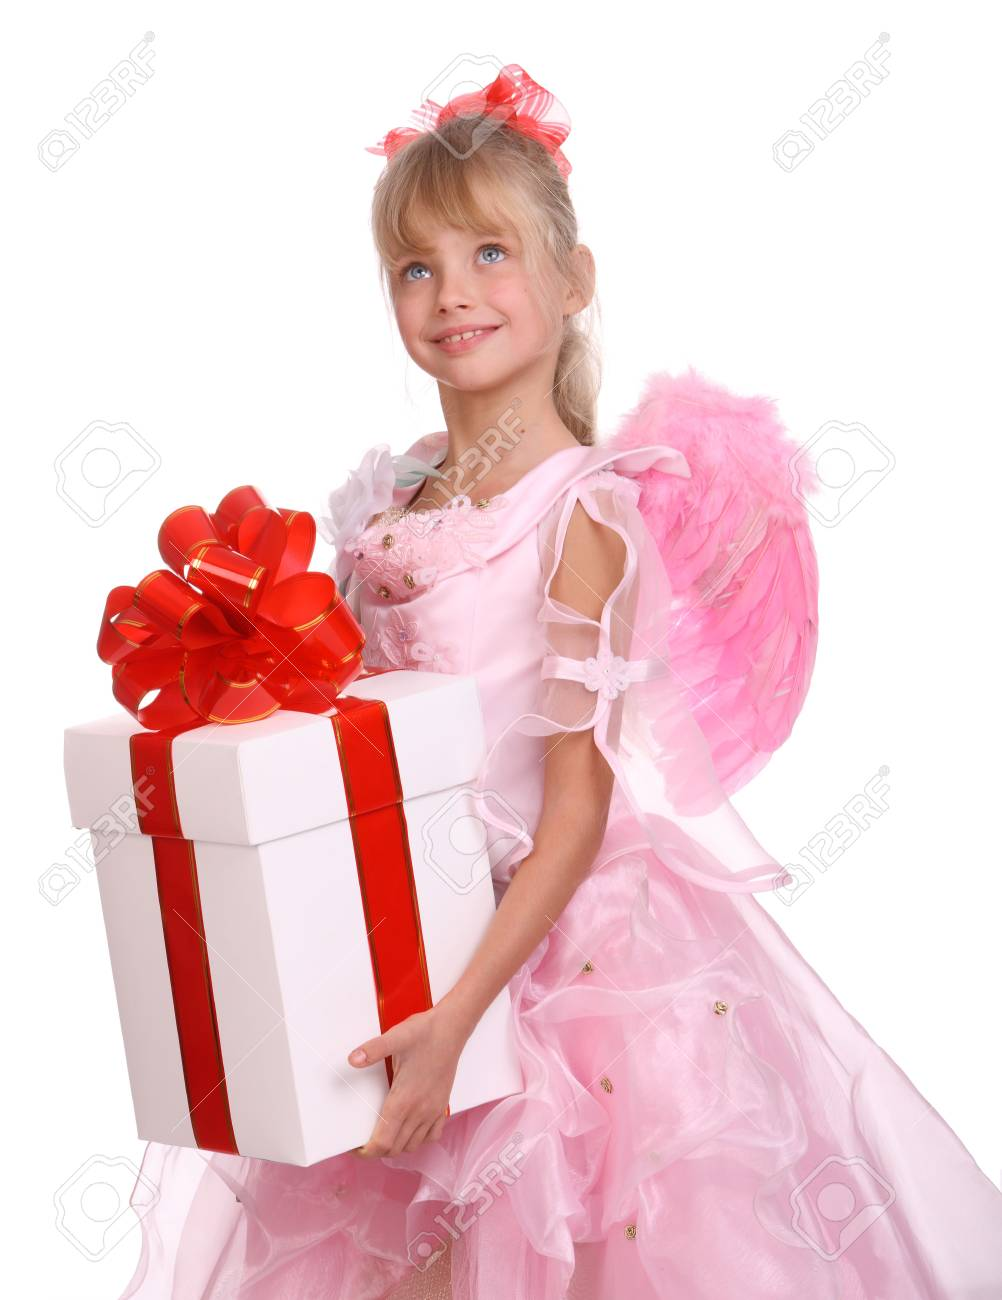 Angel with pink wings and white gift box decorate red bow. Stock Photo - 4002890